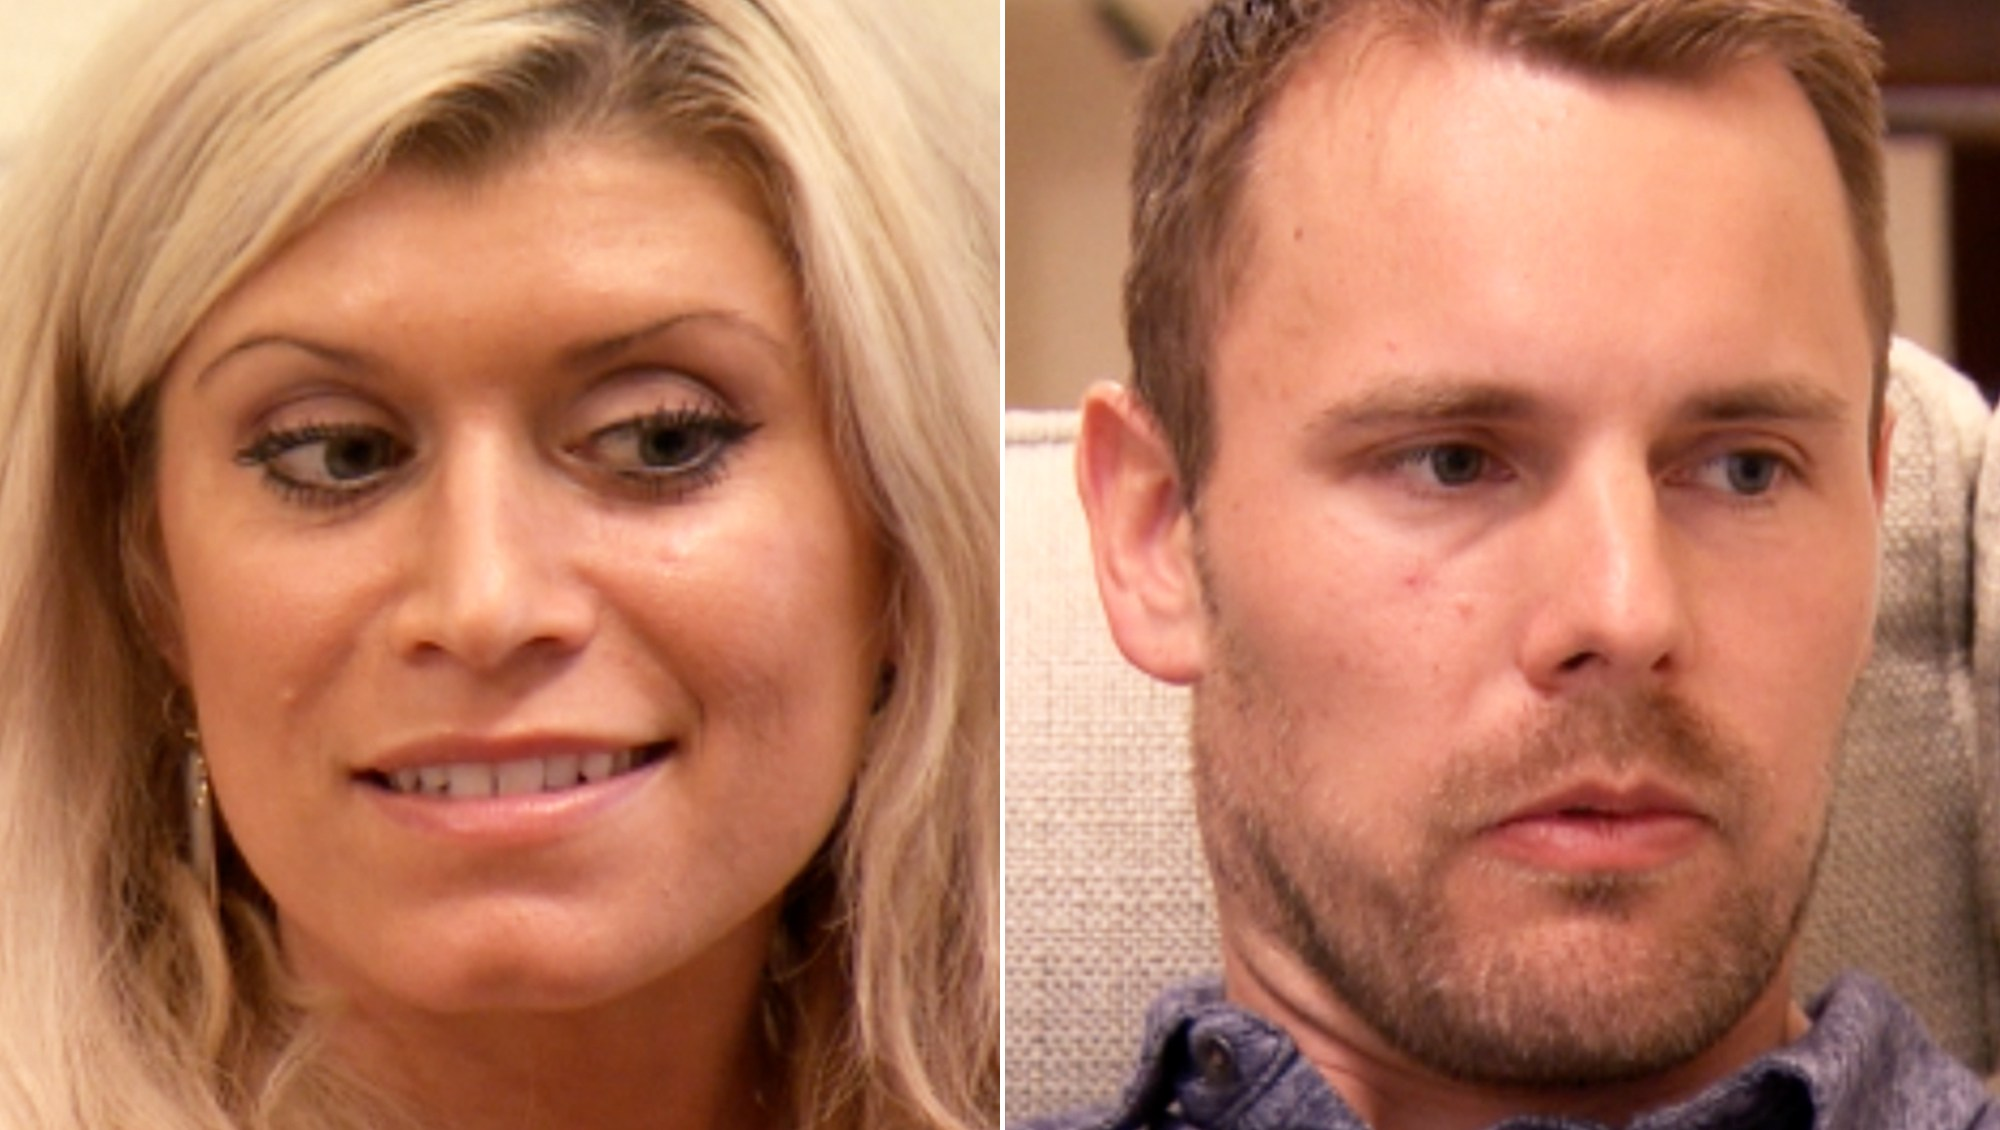 'Married At First Sight' Recap: Amber's Parenting Remark Makes Dave Uncomfortable